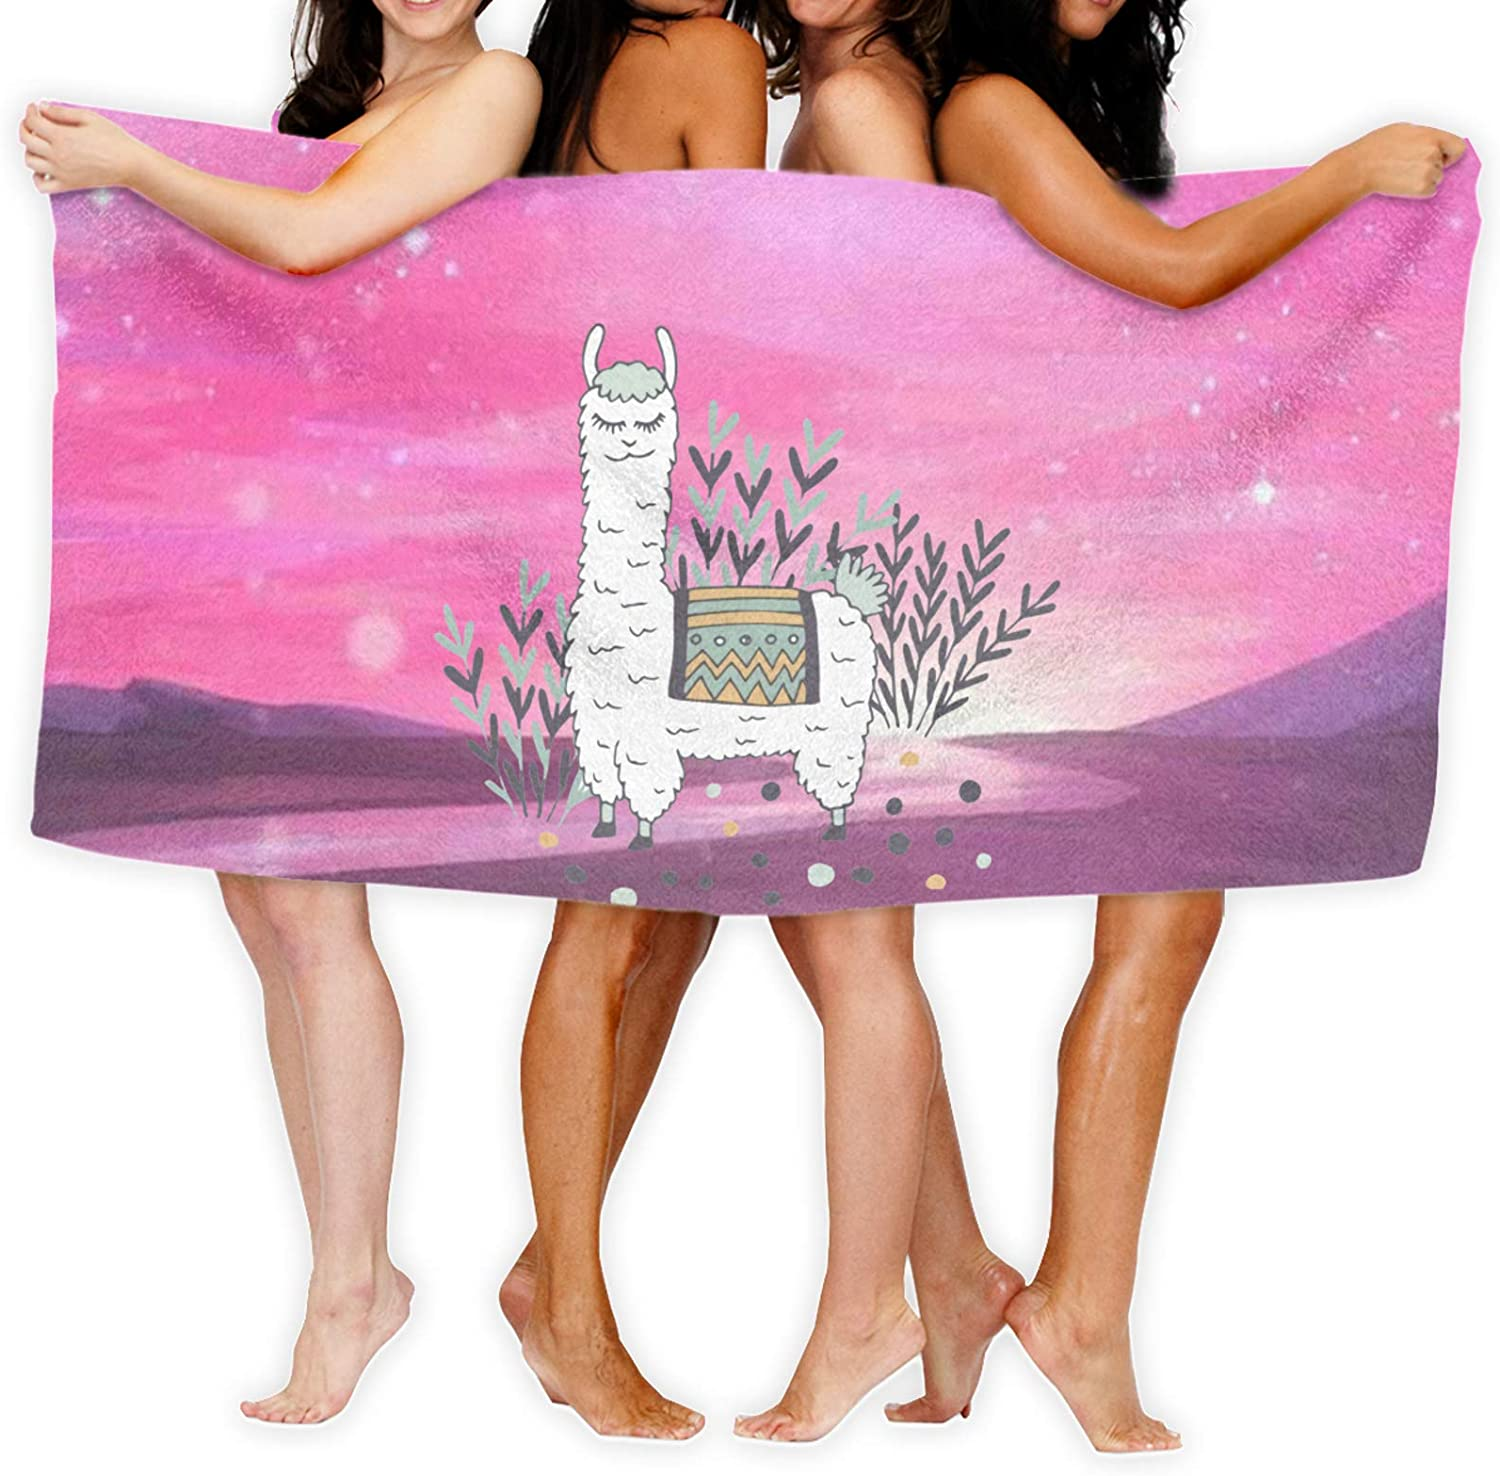 Alpaca Beach Towel 35% OFF We OFFer at cheap prices Bath Towels Absorbent Pre Fluffy Soft Blanket